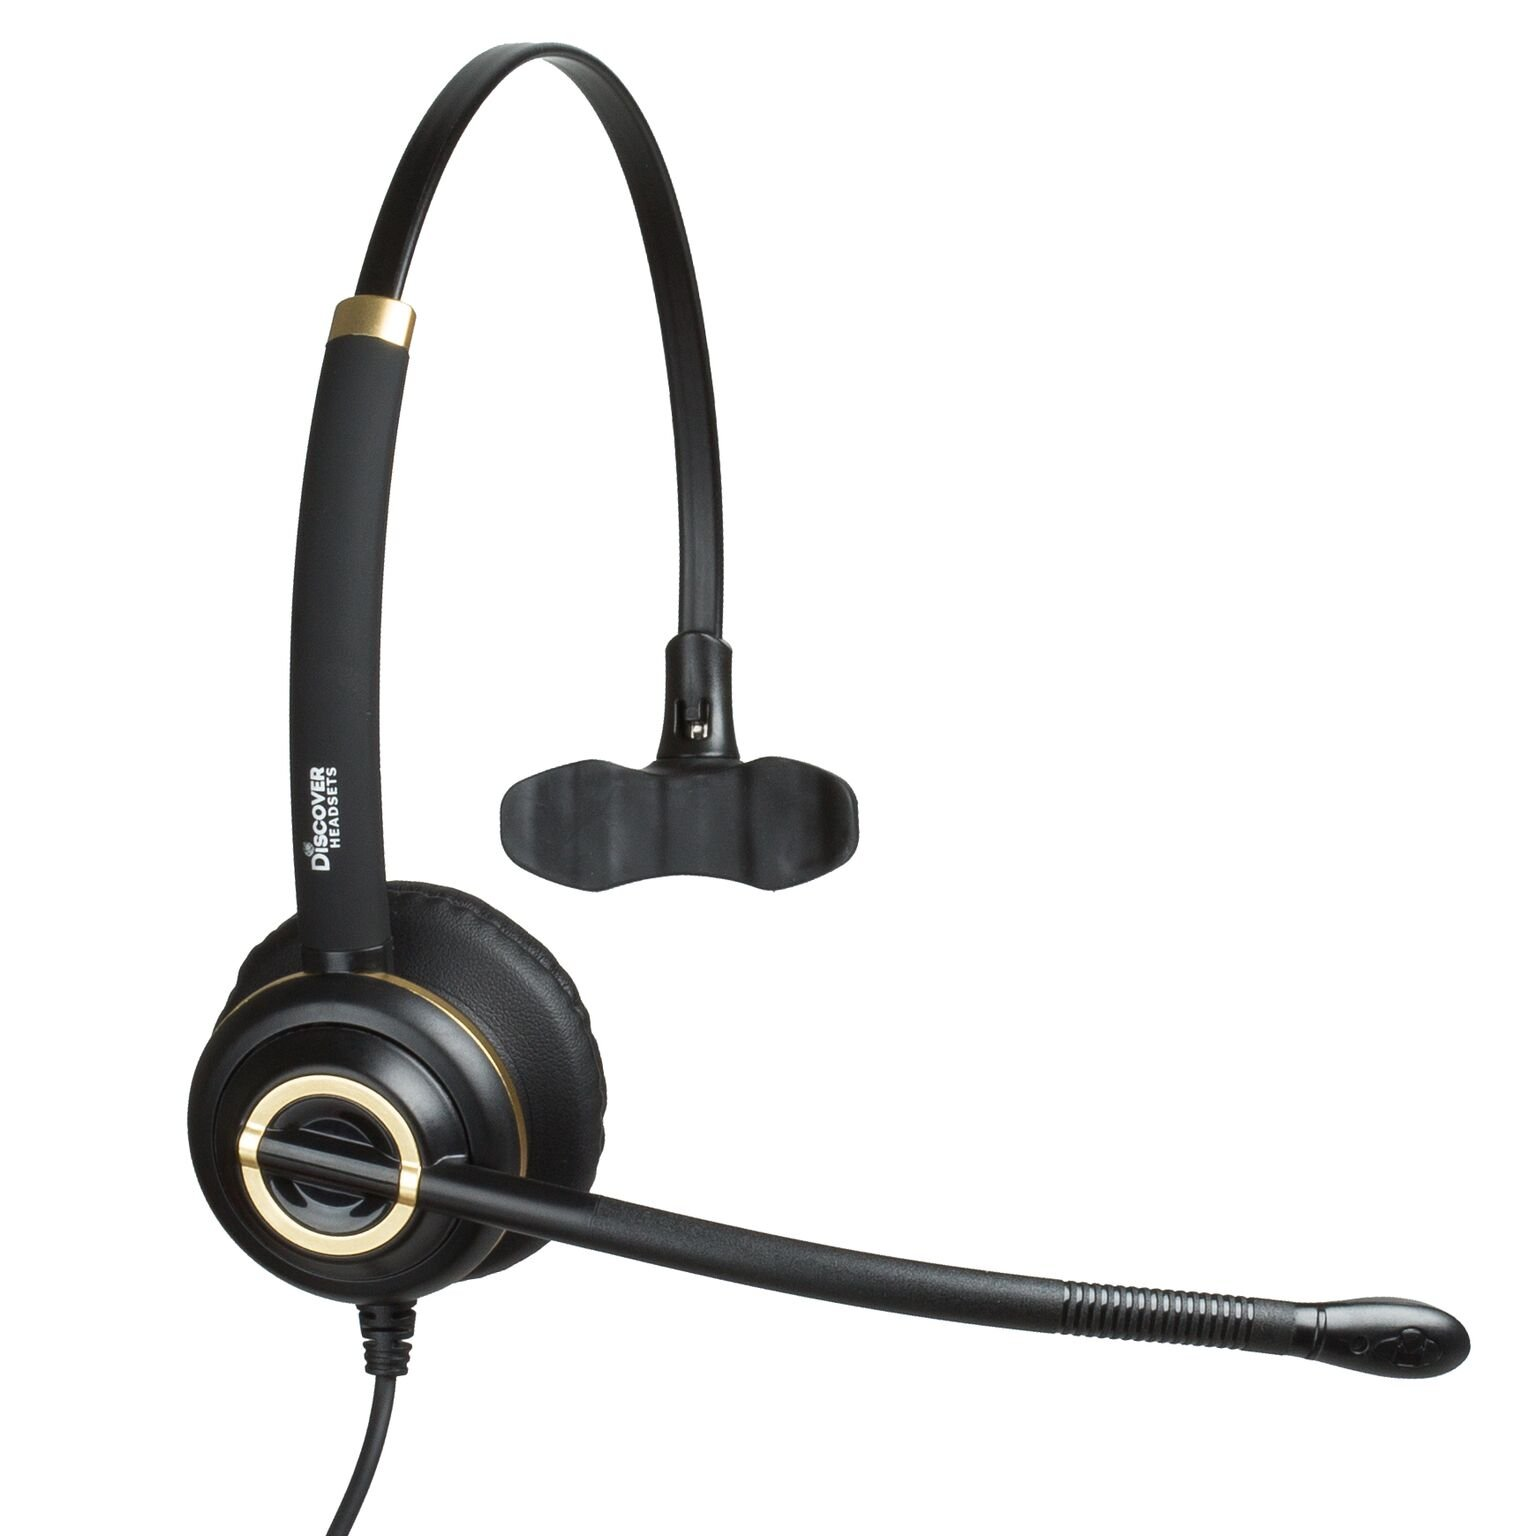 Discover D711 Deluxe Mono Wired Telephone Headset For Office Workers and Call Center Agents- 3 Year Warranty